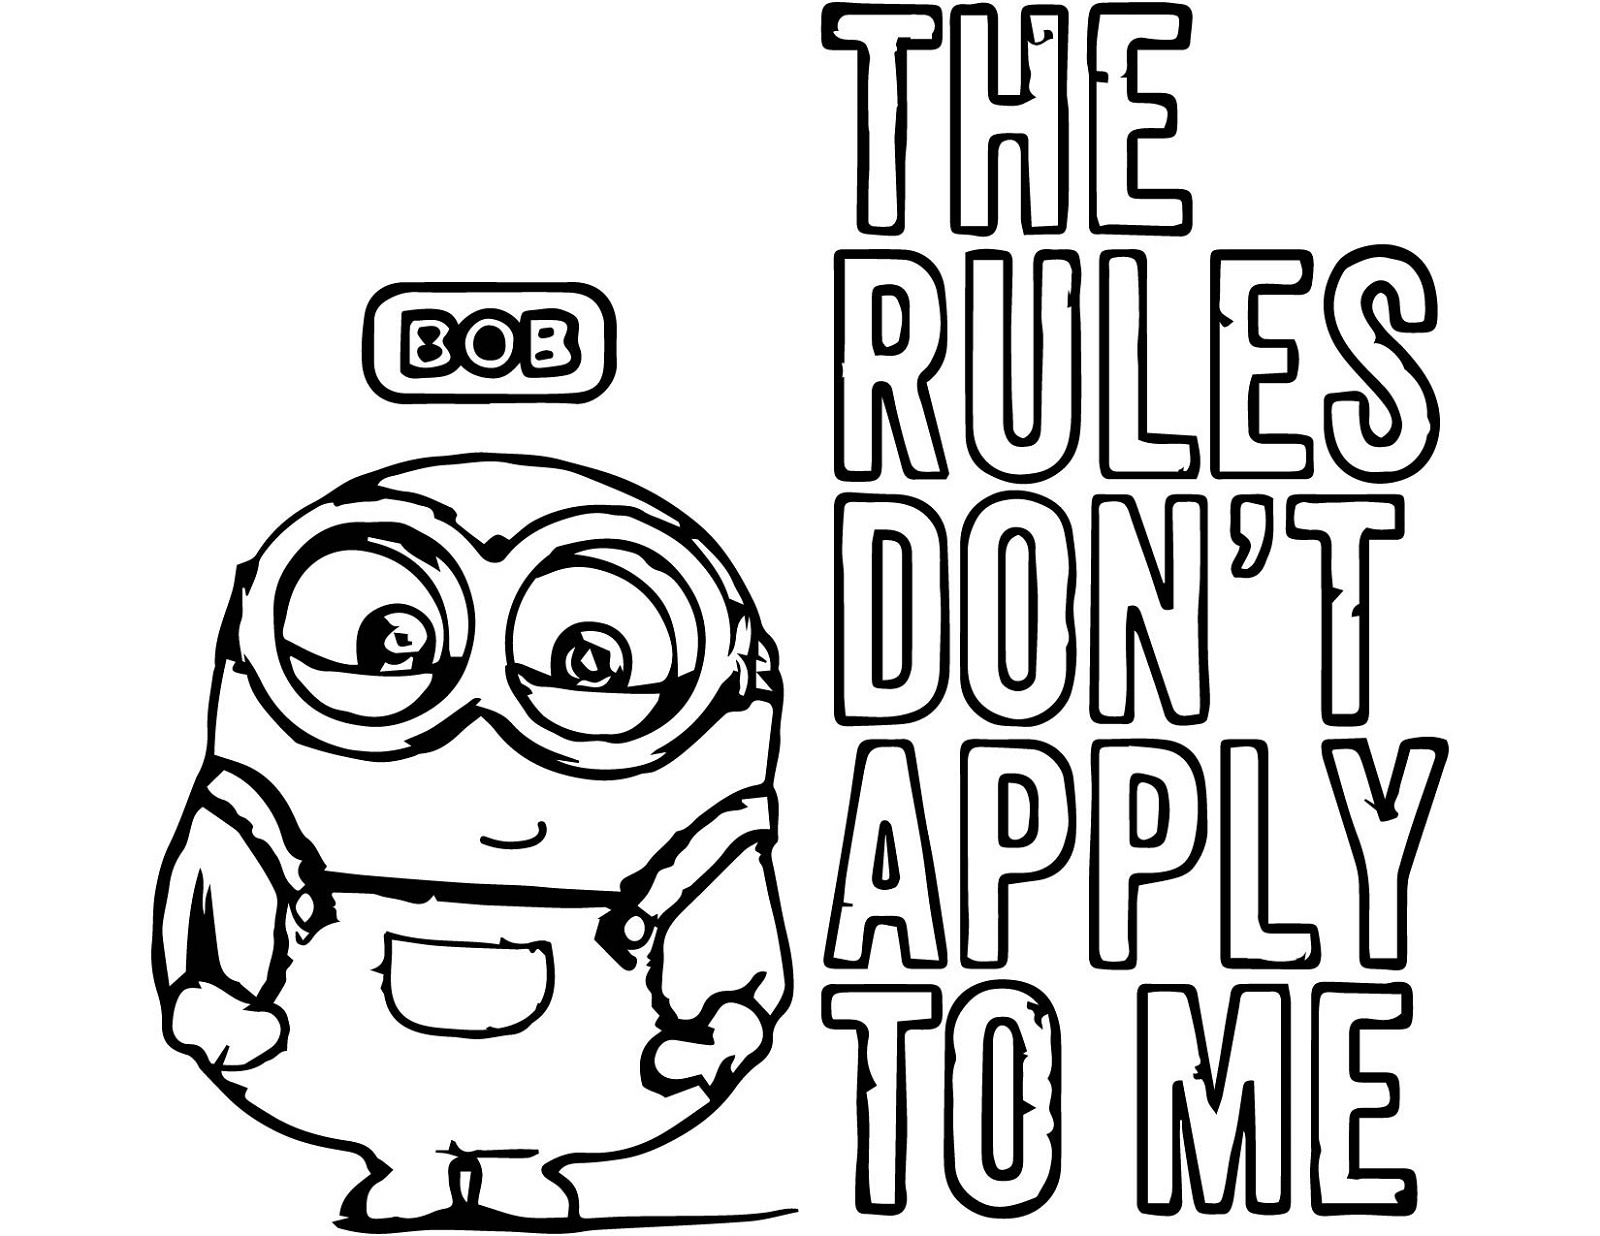 Minion Coloring Pages Bob Quotes